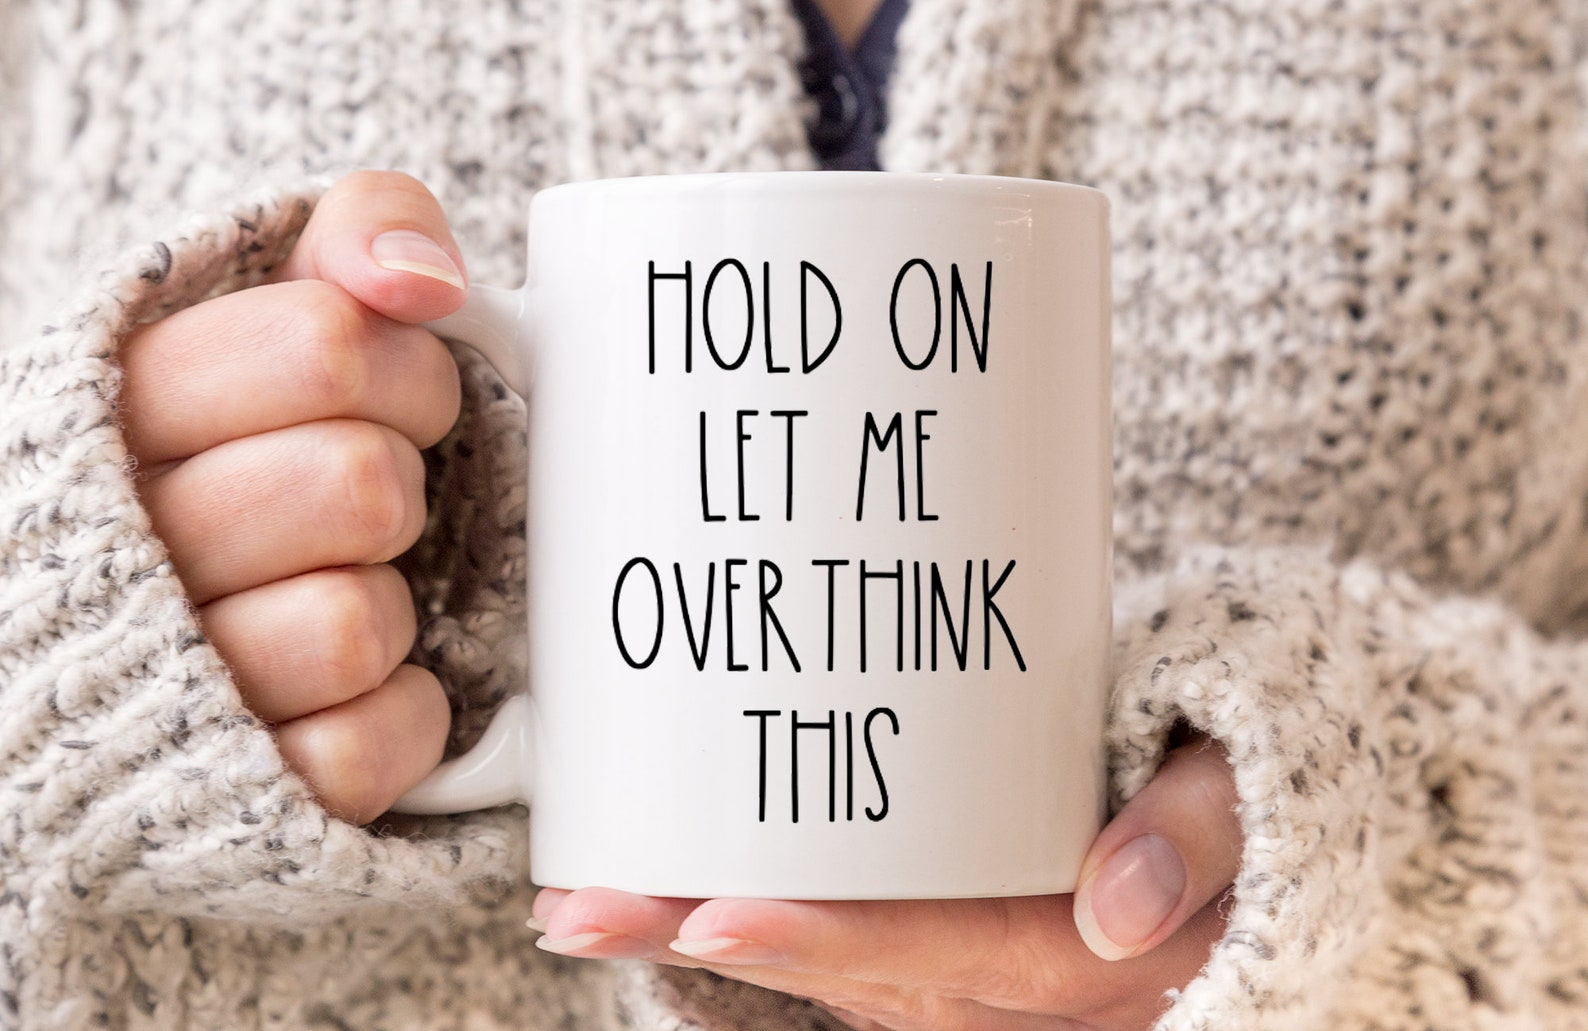 Hold On Let Me Overthink This Mug